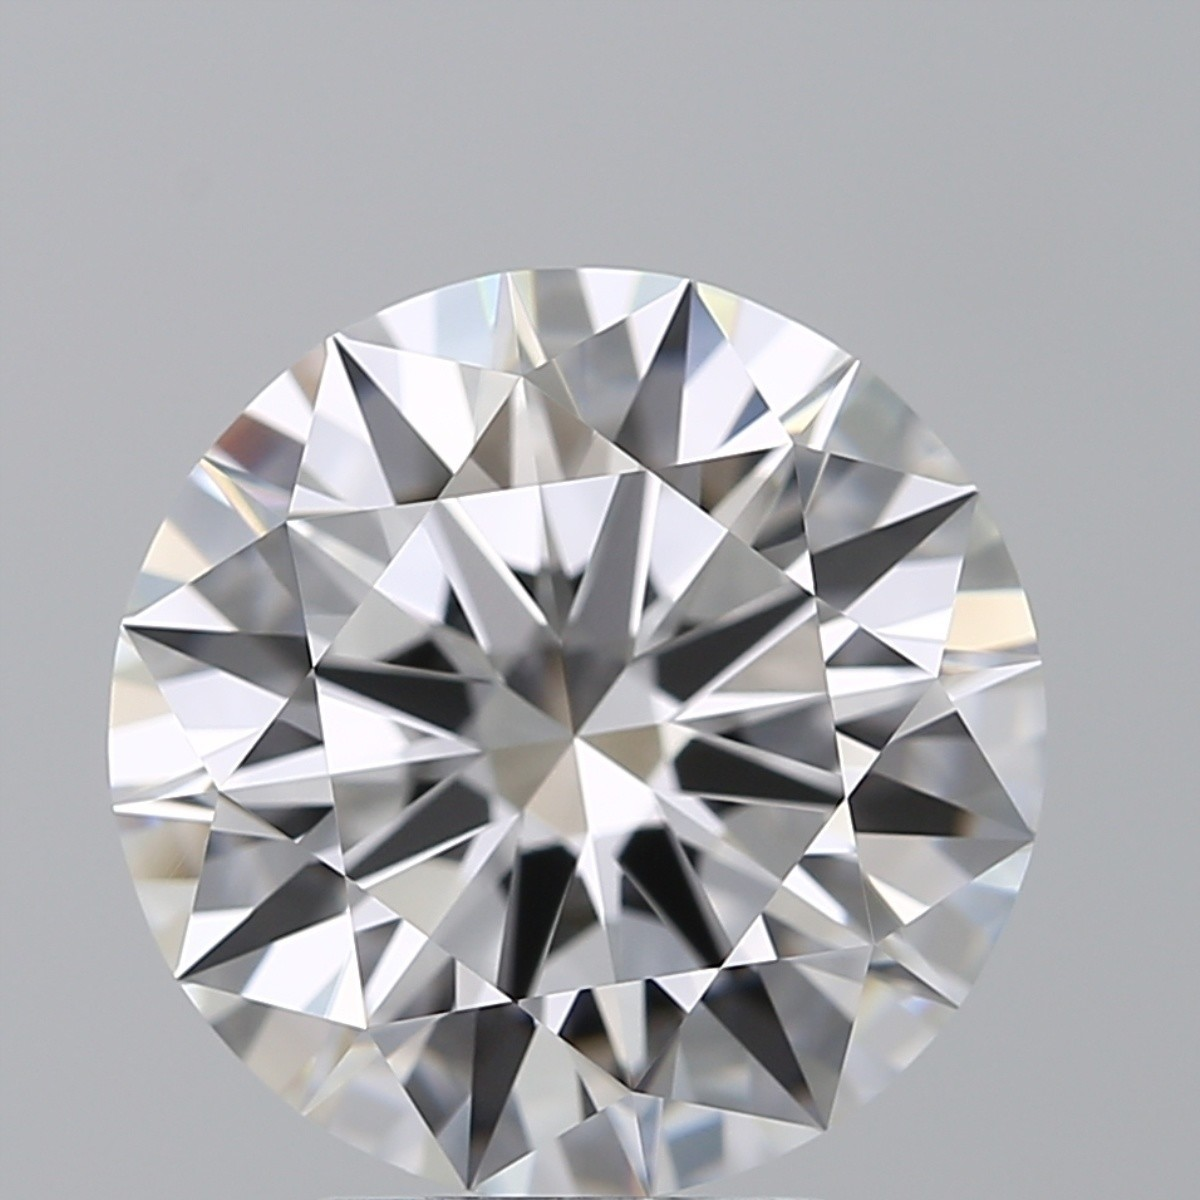 3.45 Carat Round Brilliant Diamond (D/VVS1)